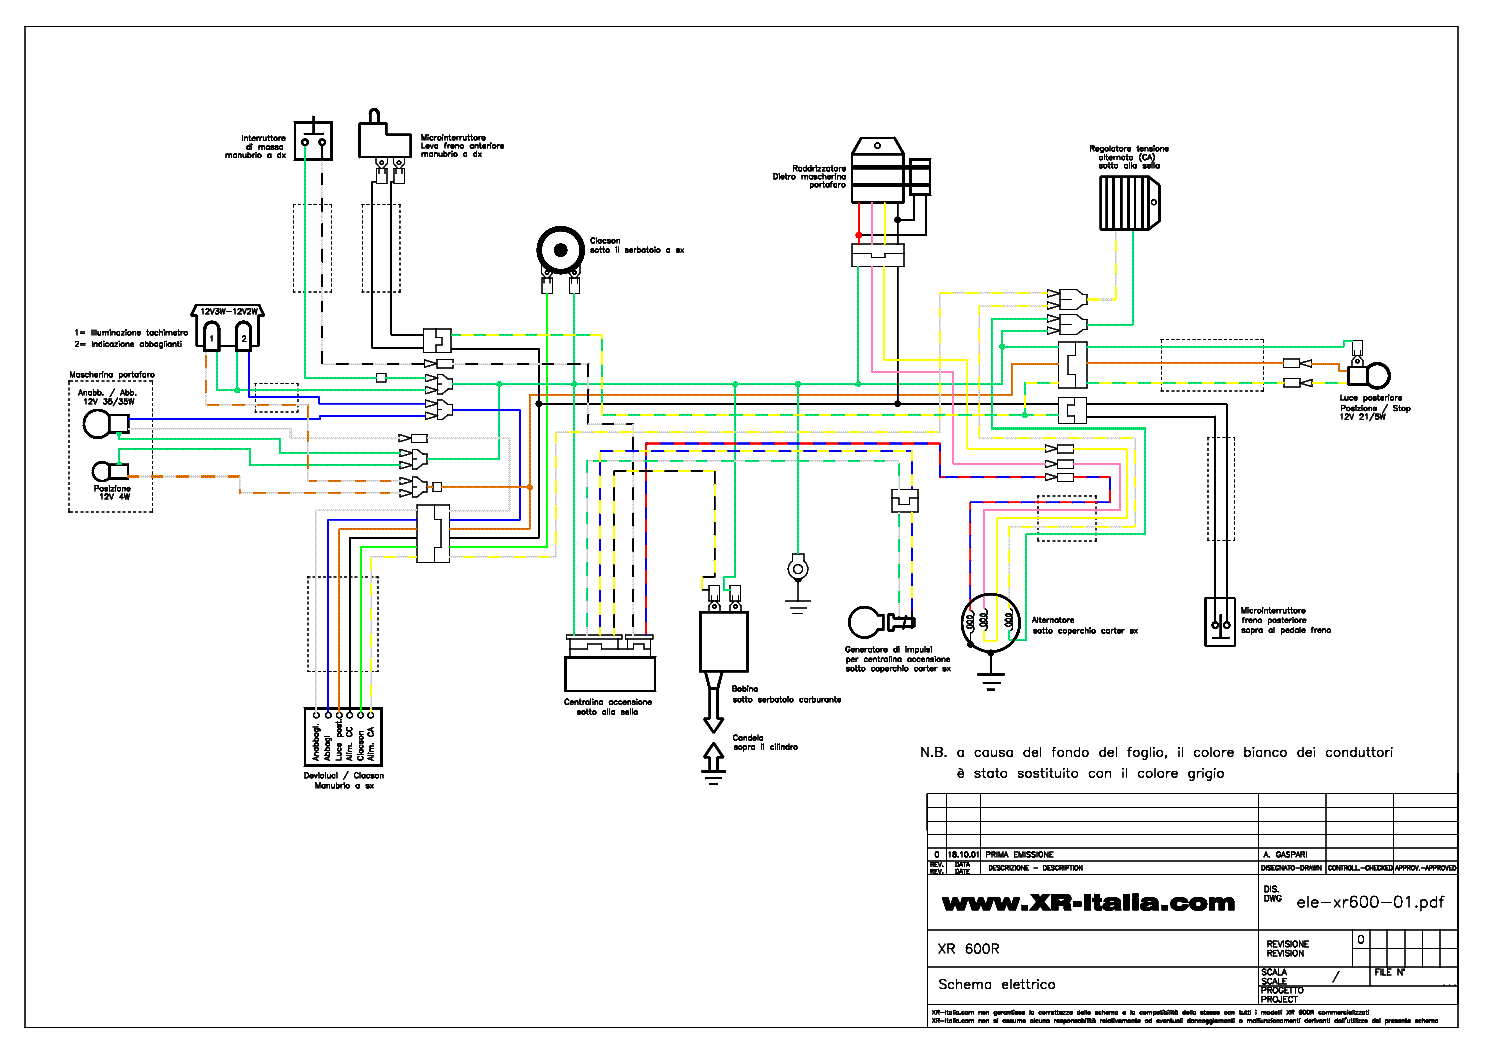 honda_xr_600.pdf_1 xr600 wiring diagram efcaviation com 1995 xr600 wiring diagram at readyjetset.co